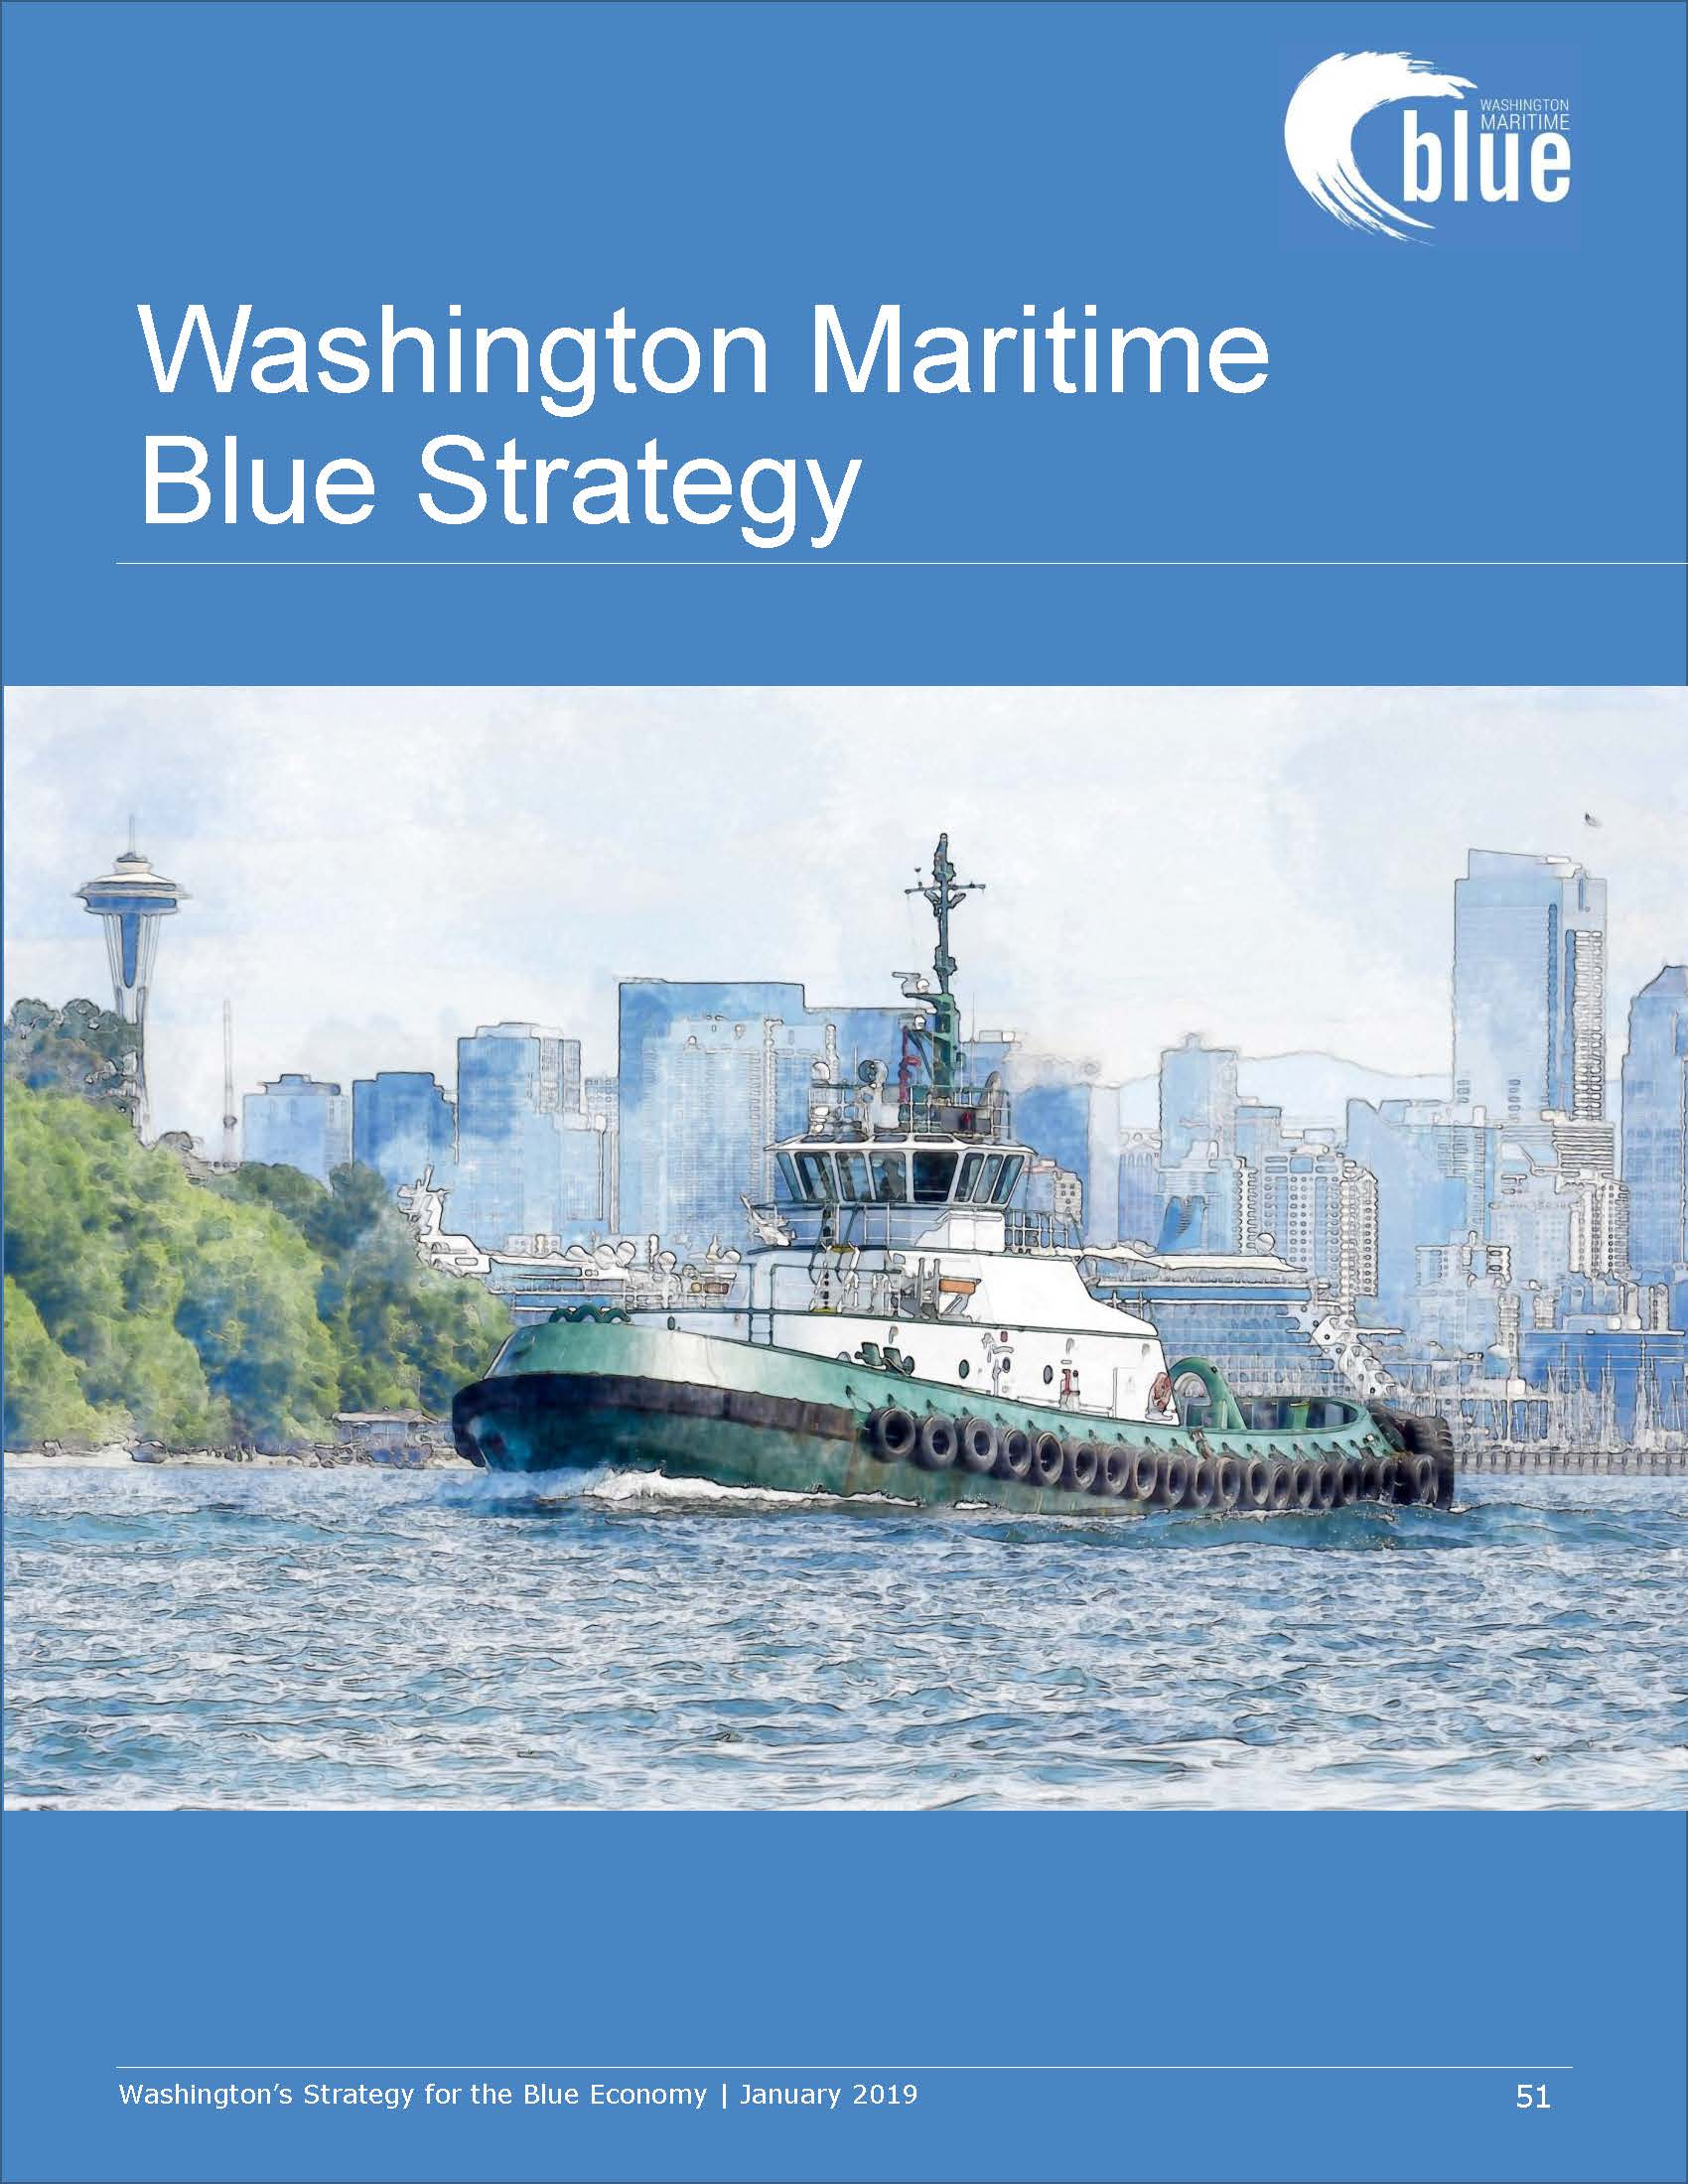 MaritimeBlue_Main Report_Final_1-4-19_Page_51.jpg